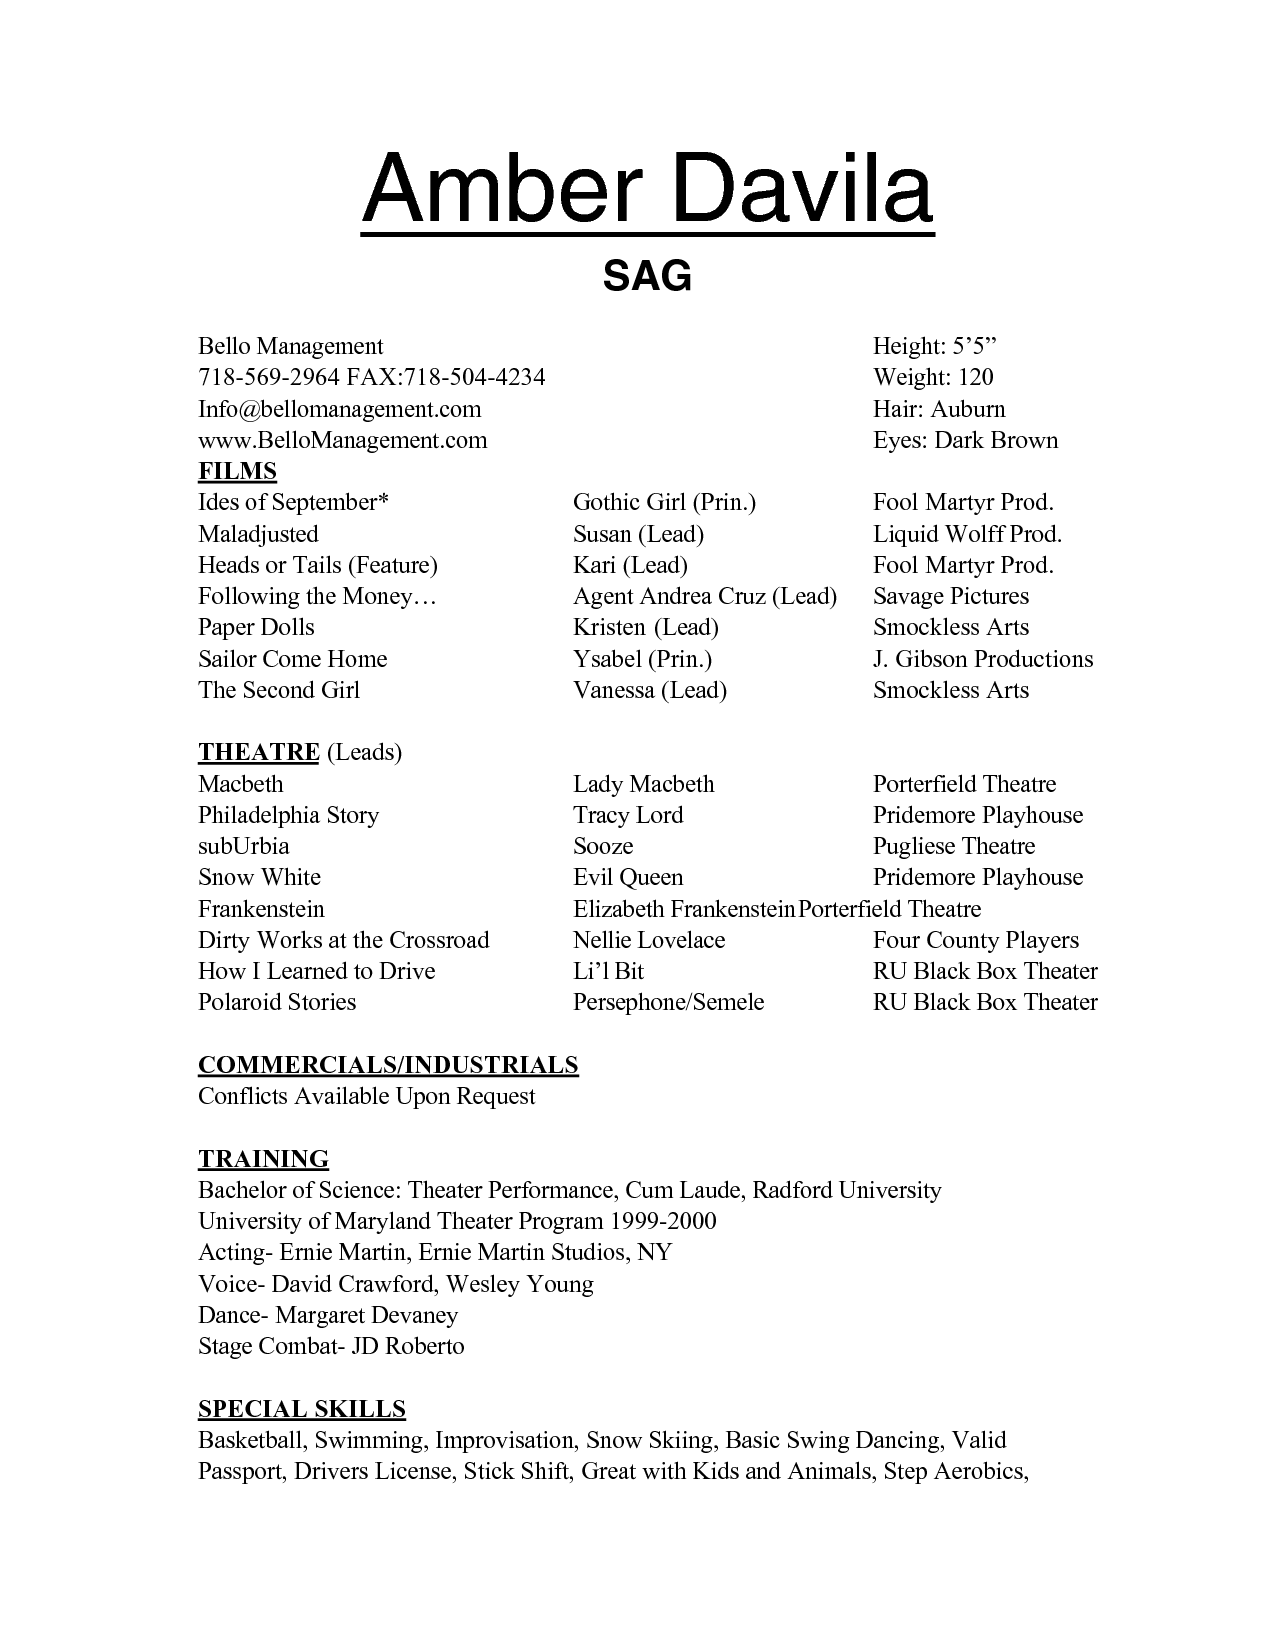 Resume Acting Resume Templates free acting resume templates samplebusinessresume com template for kids by amber davila